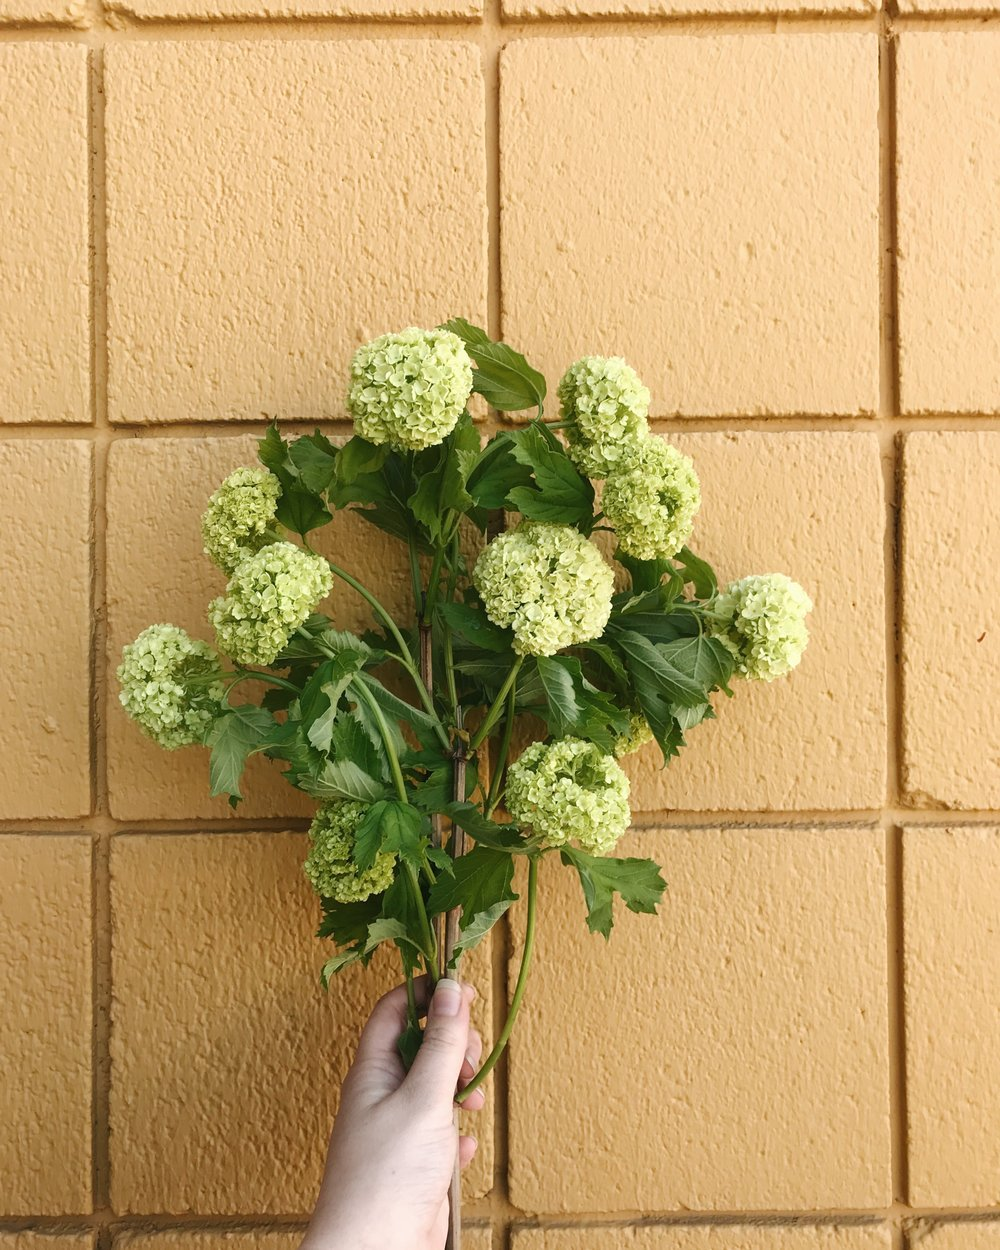 Spring Flowers 101, Viburnum, Bringing fresh flowers into your interior design and home decor, Nyla Free Designs, Calgary Interior Designer